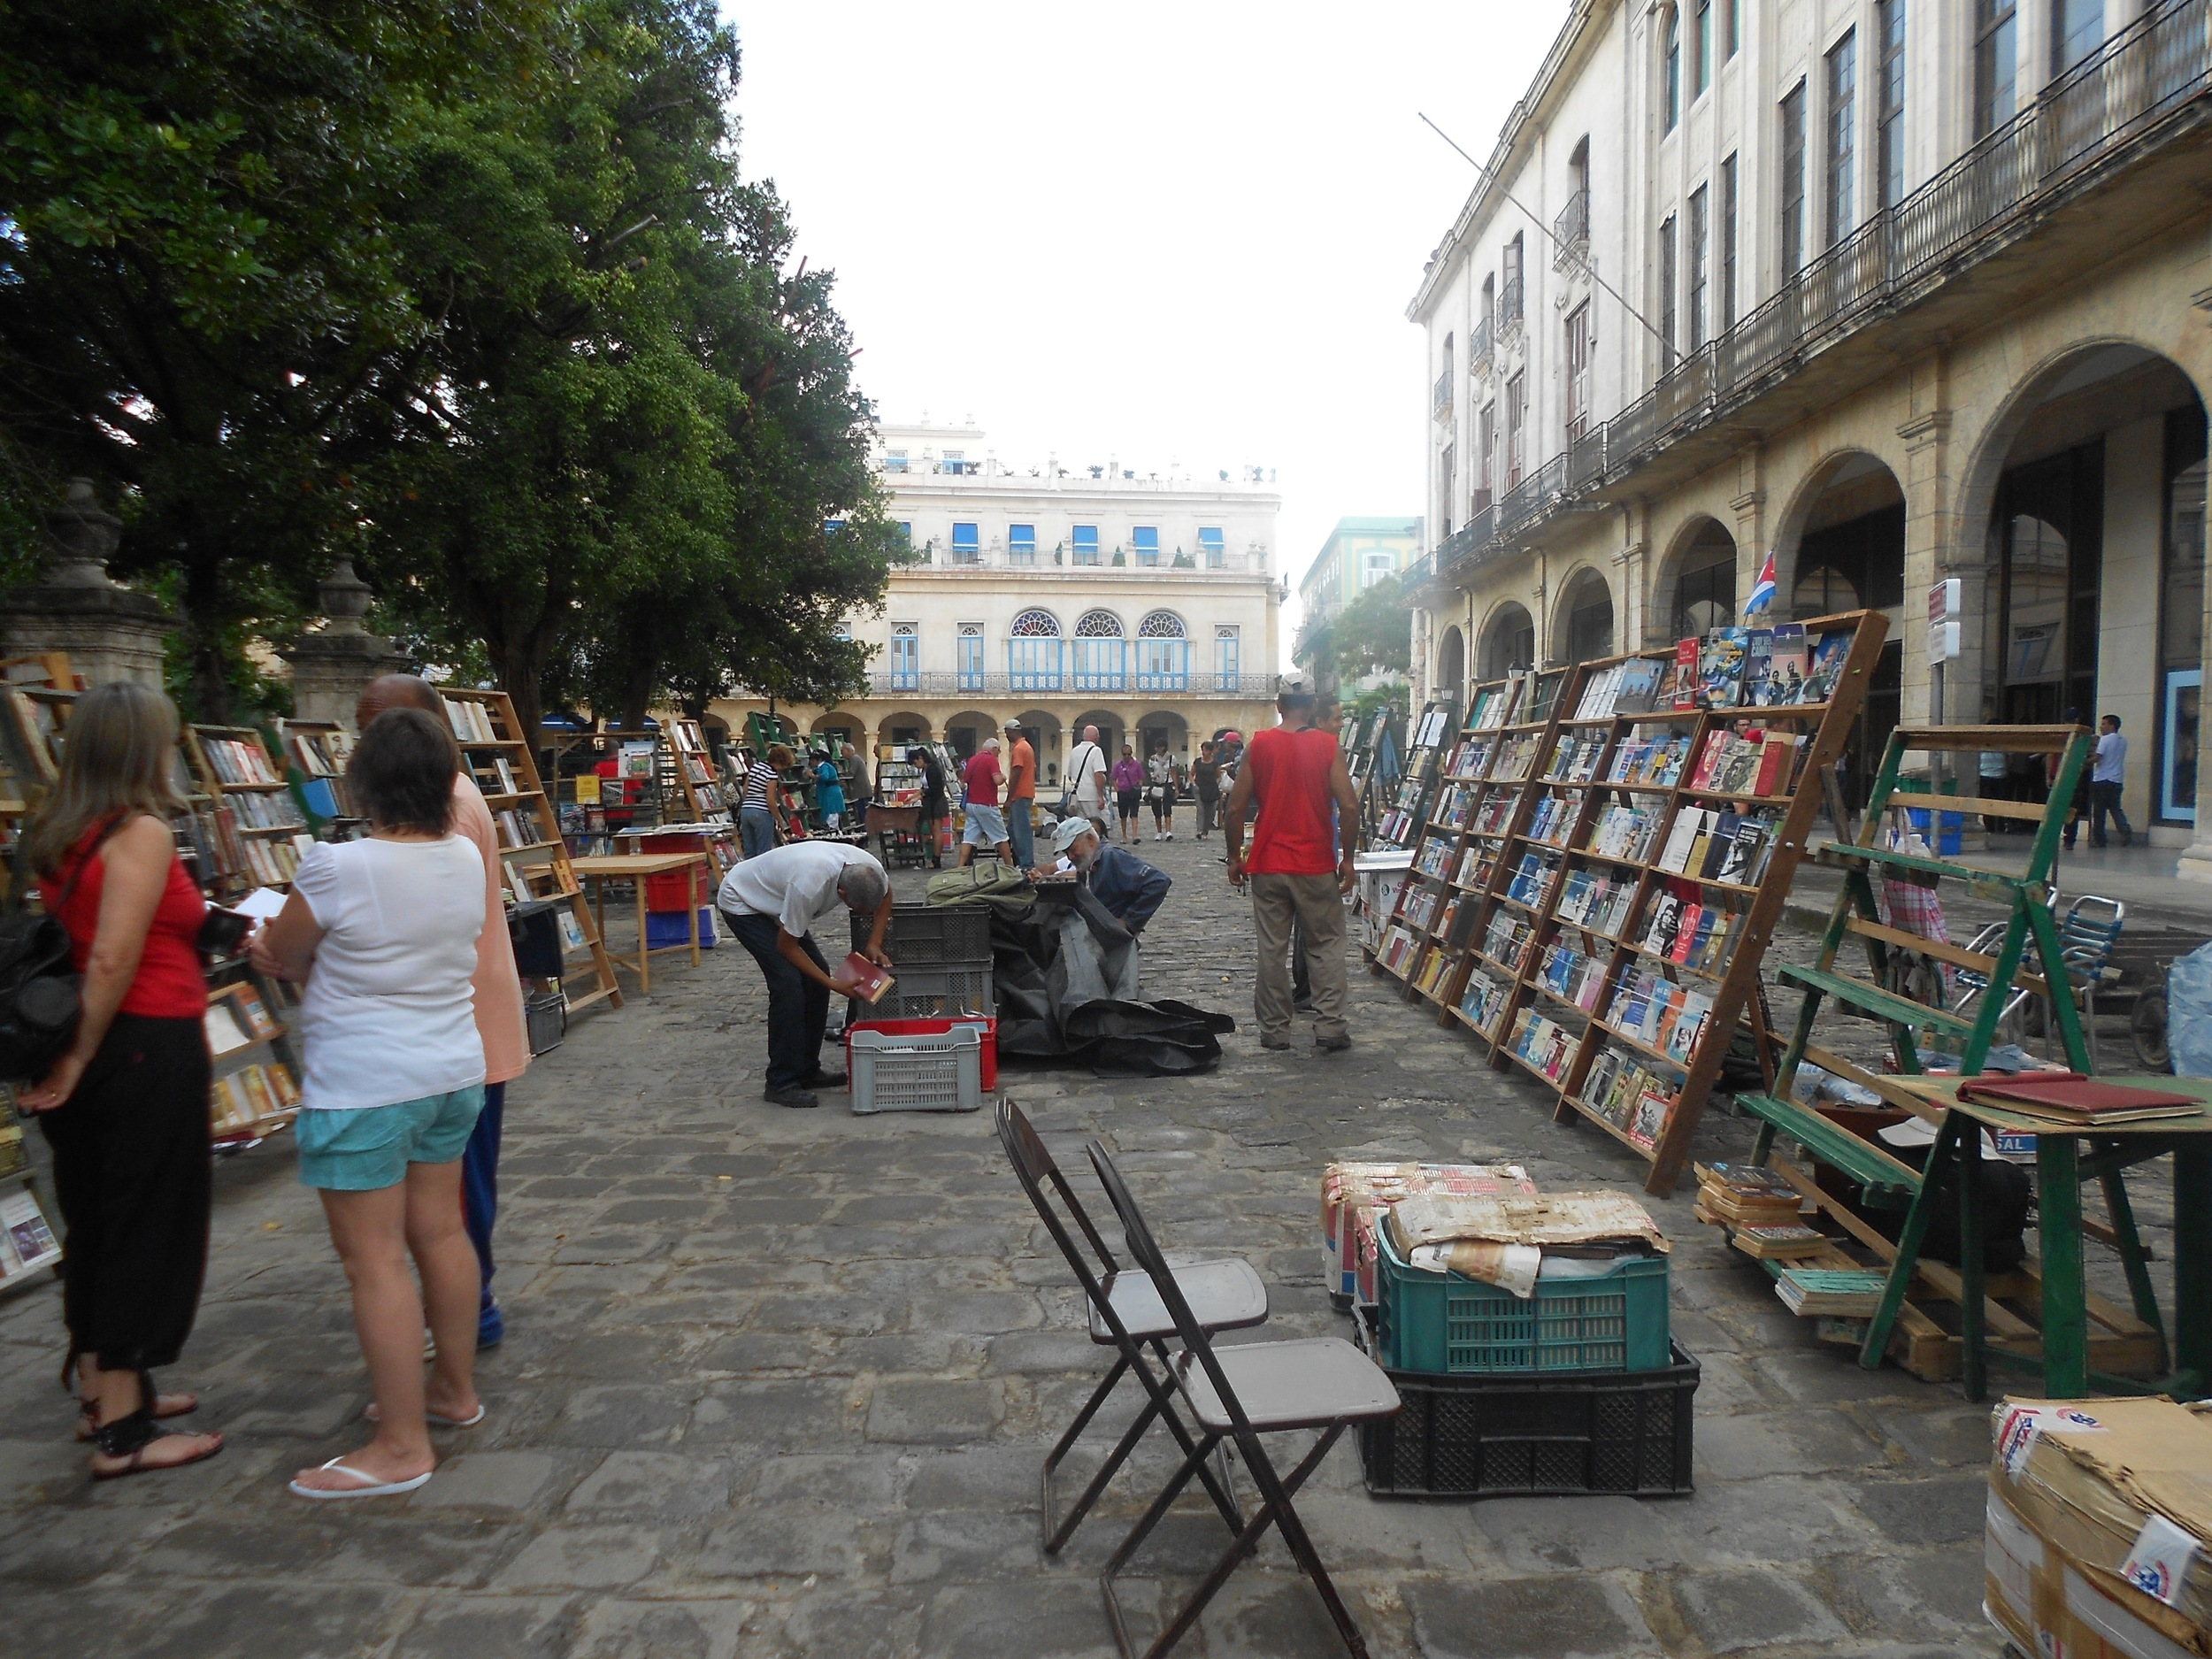 A (mostly Communist) book sale in the city center of Havana